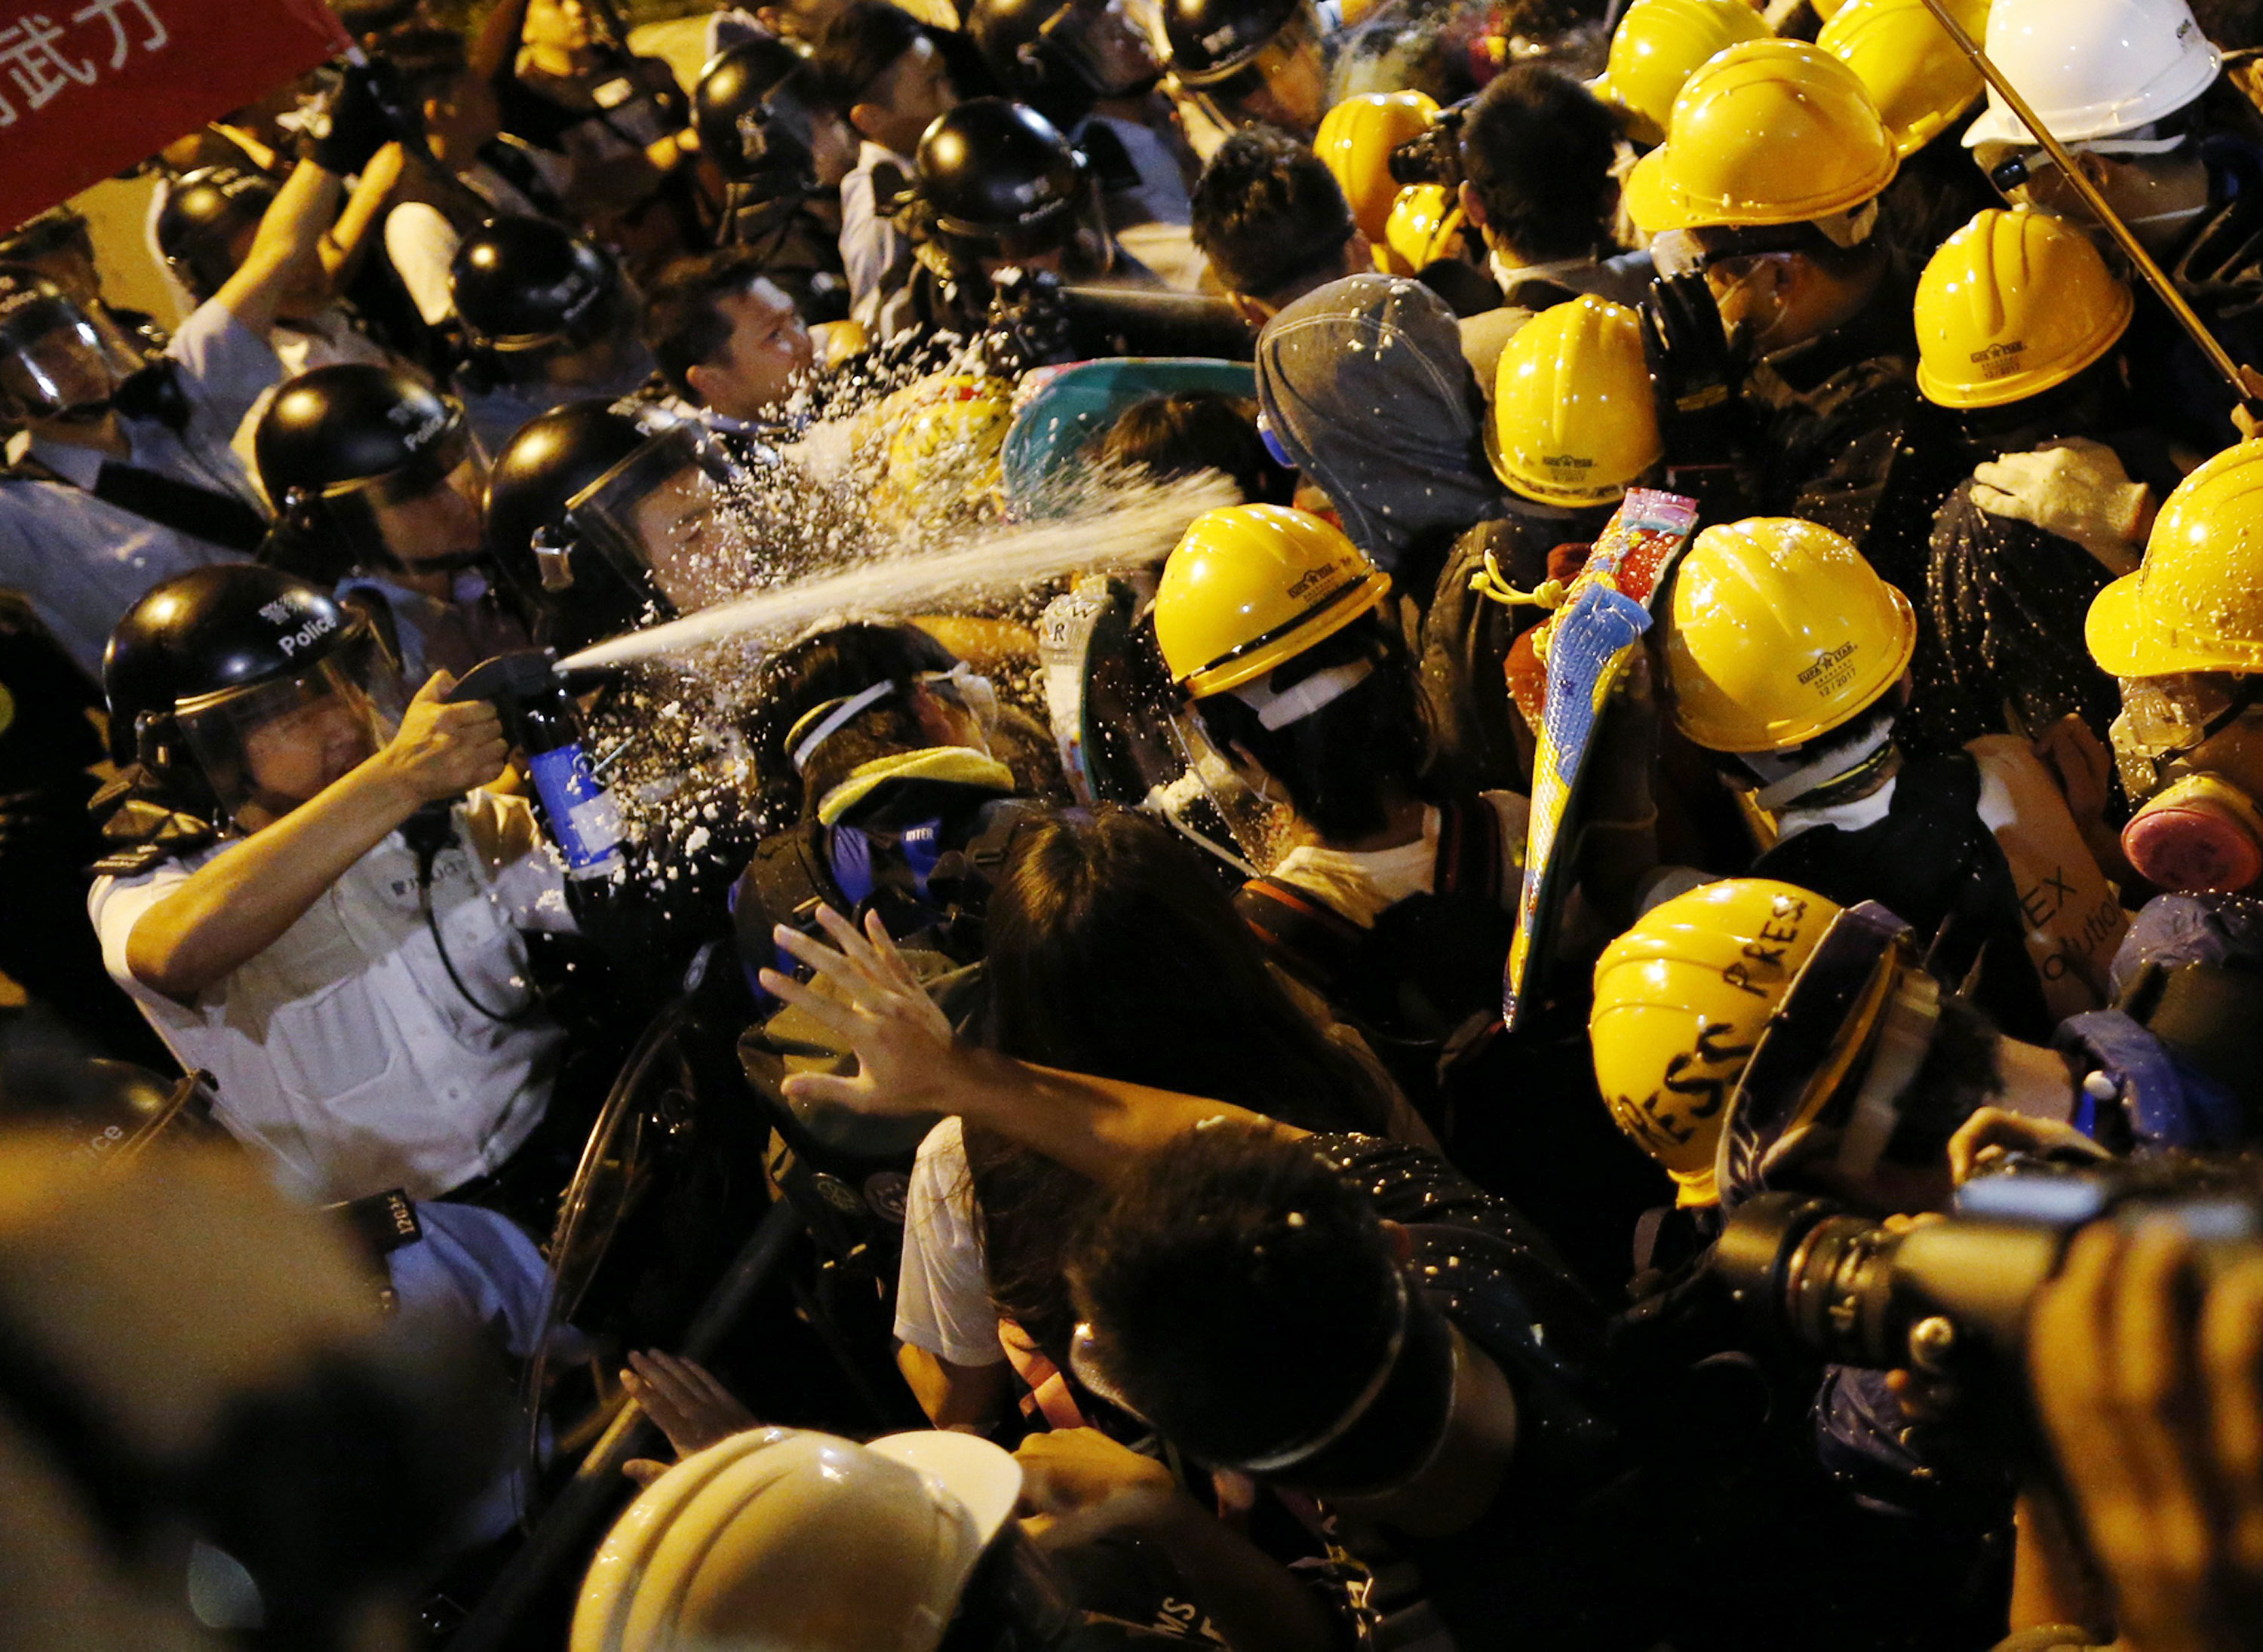 Police use pepper spray during clashes with pro-democracy protesters close to the chief executive office in Hong Kong